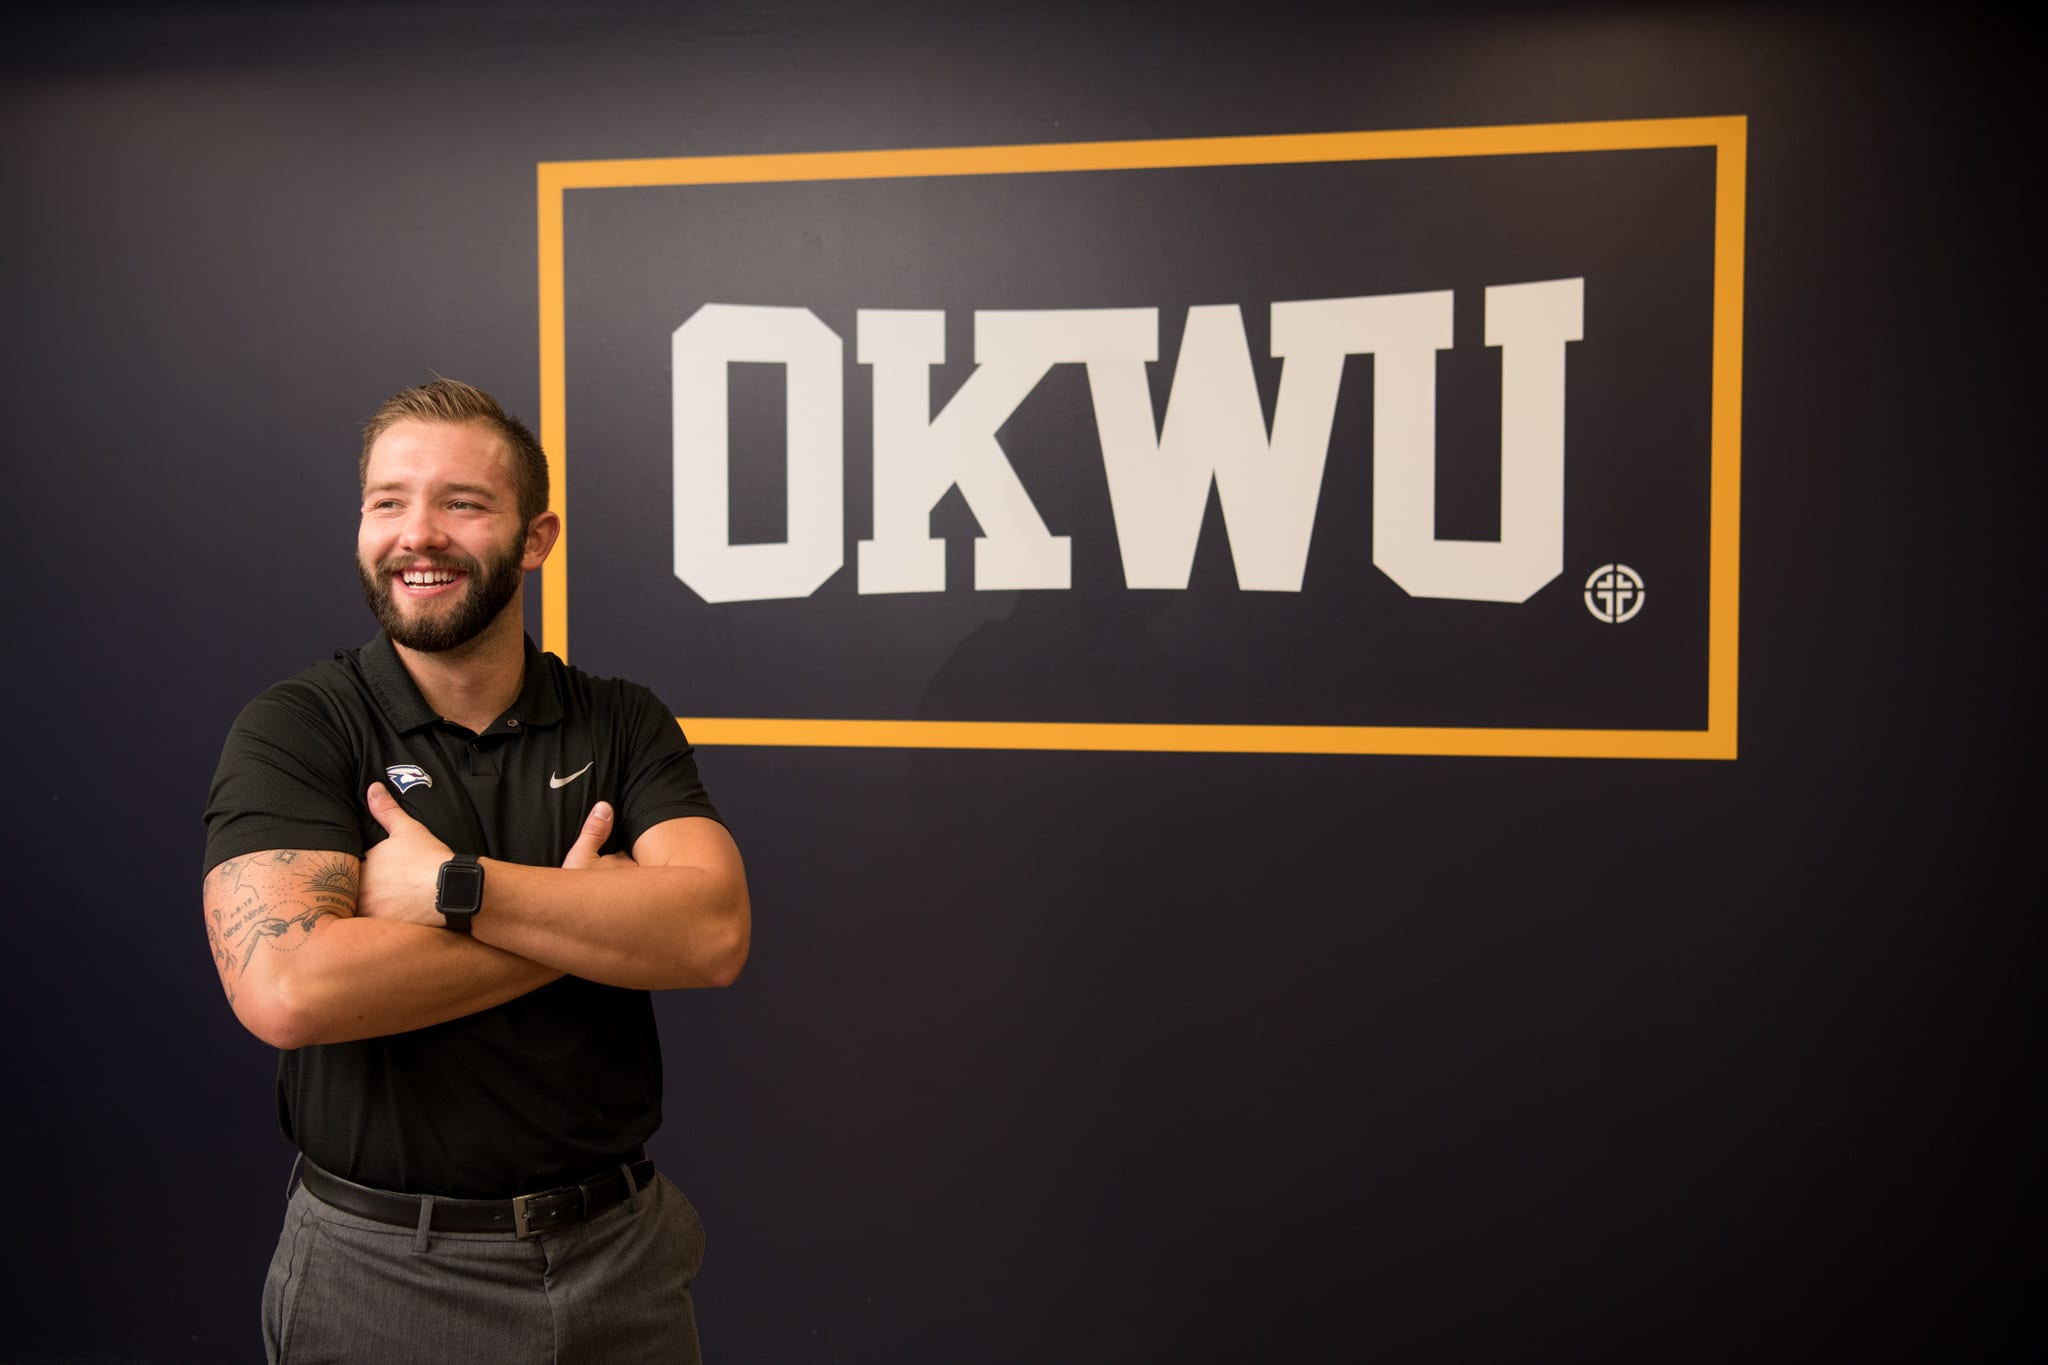 Jake Feickert standing next to the large OKWU mural